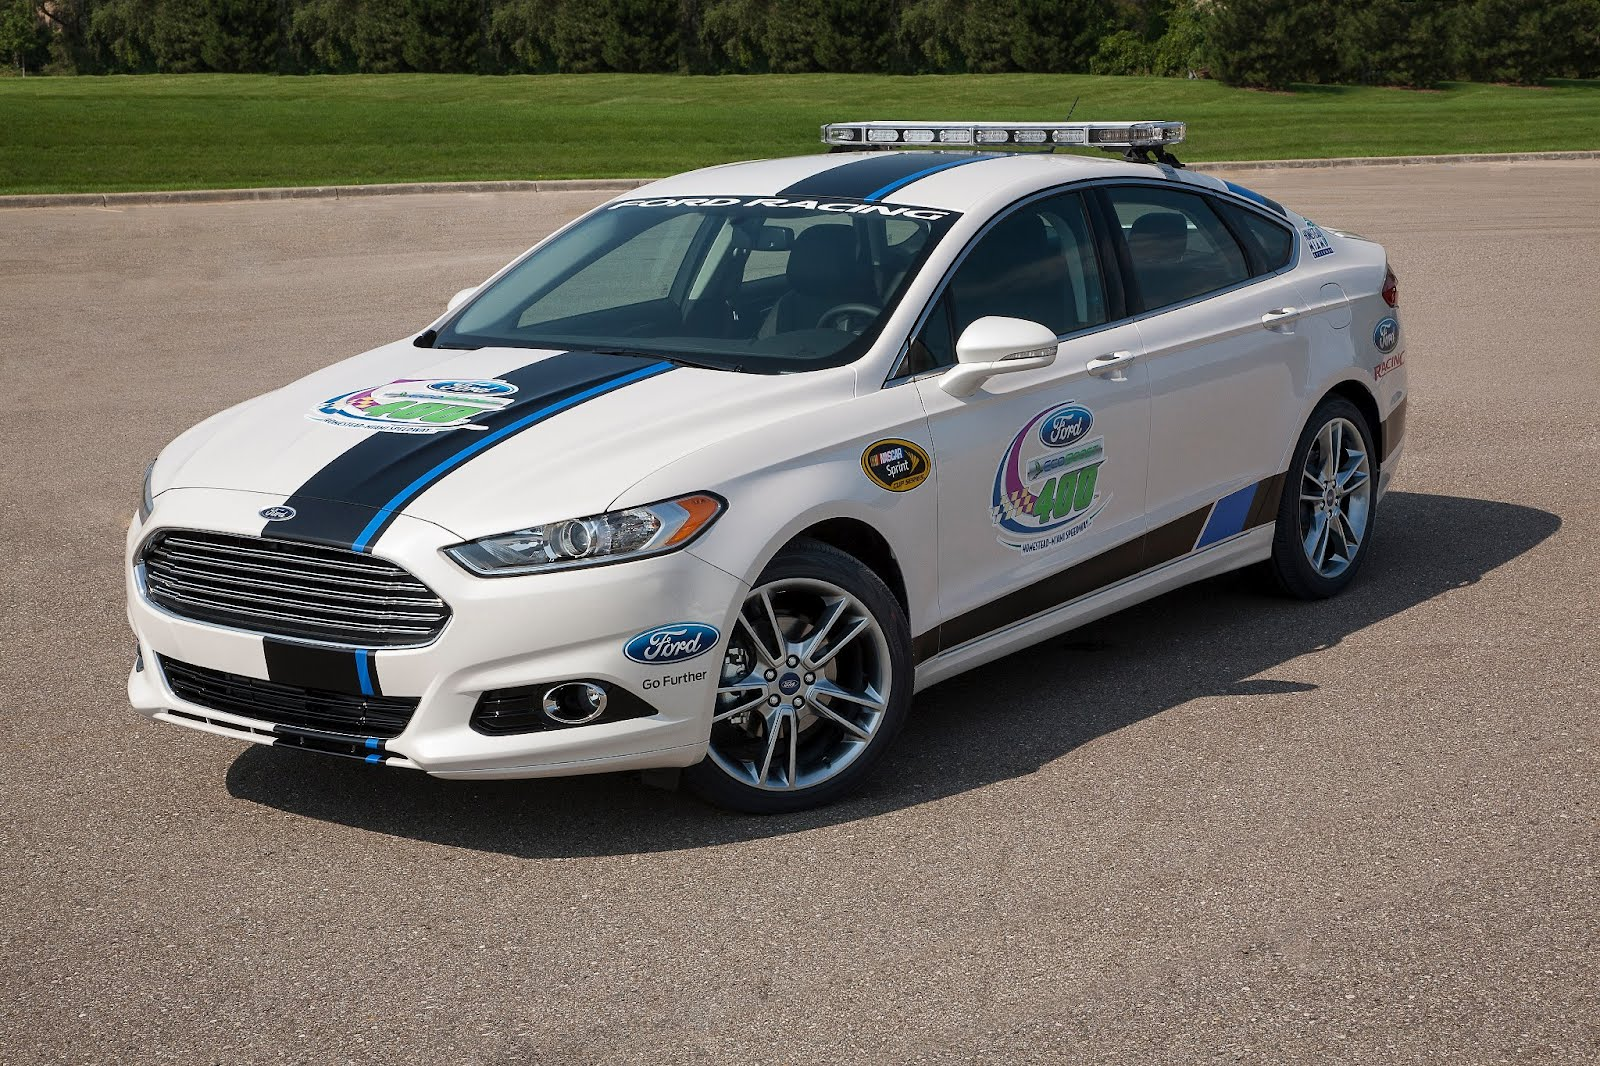 2013 Ford Fusion Pace Car to Drive Off the Track and Into the Driveway of One Lucky Fan [w/Video ...